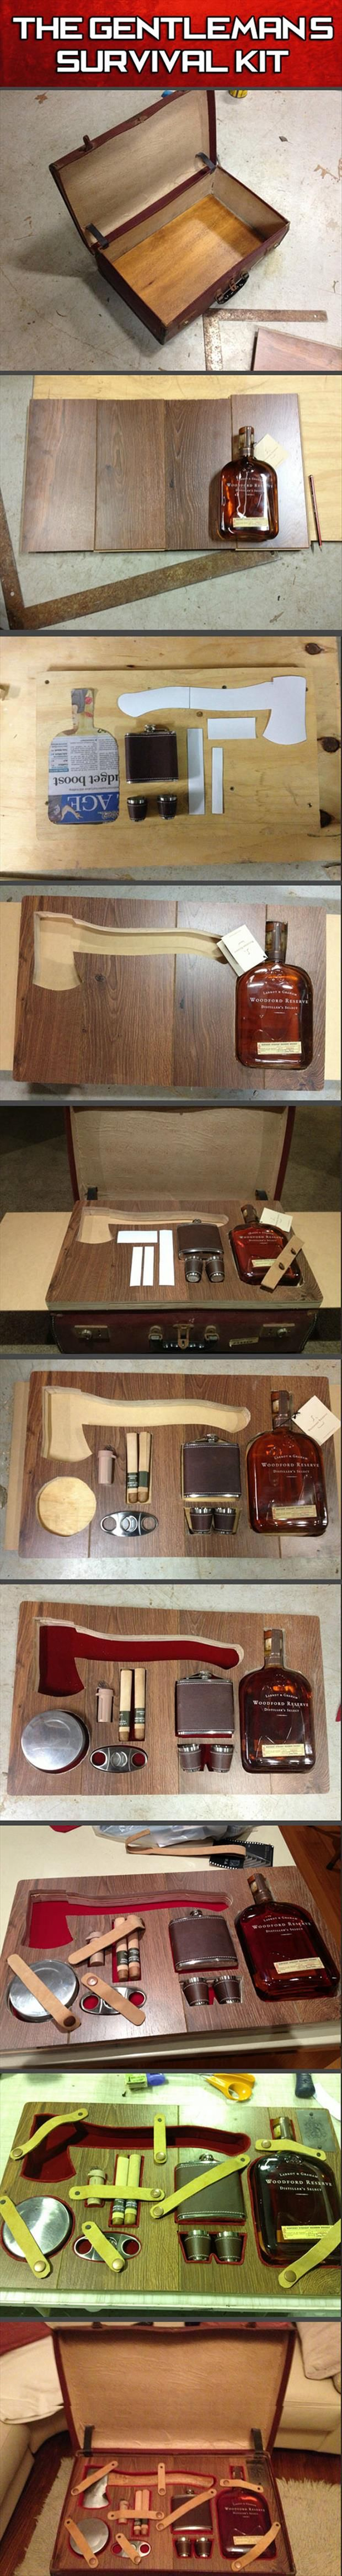 The gentleman's survival kit... This is actually pretty damn awesome o.o